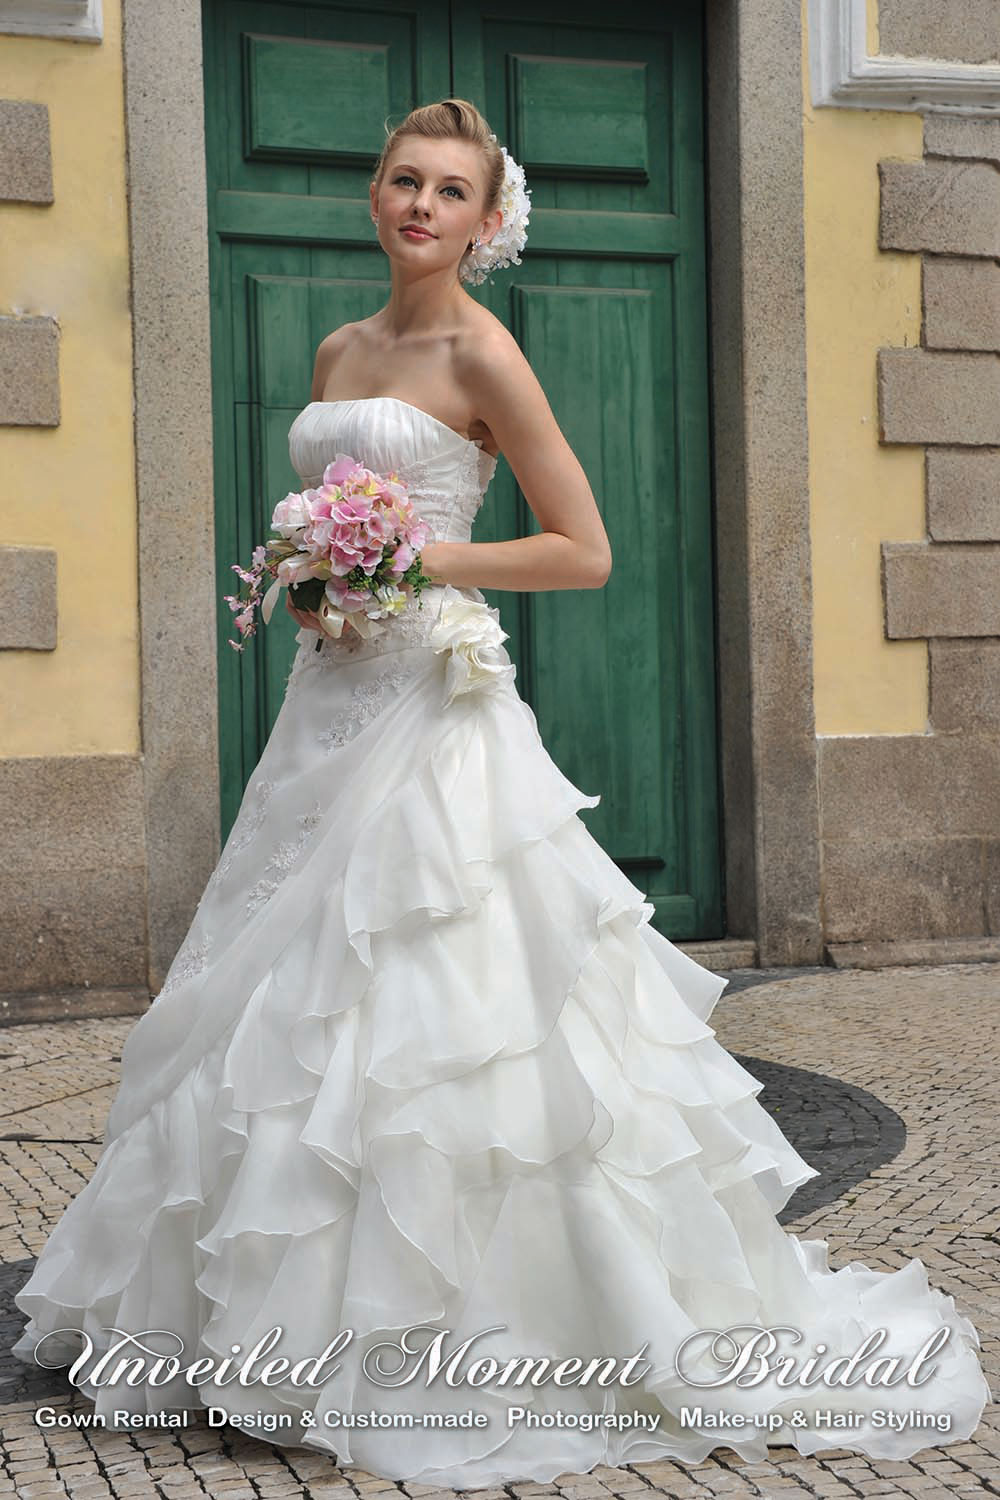 Strapless organza wedding gown with decorative lace appliques, a ruched bodice, and a ruffled brush train 無肩帶low-cut, 玻璃紗, 蕾絲上身, 荷葉邊裙擺婚紗